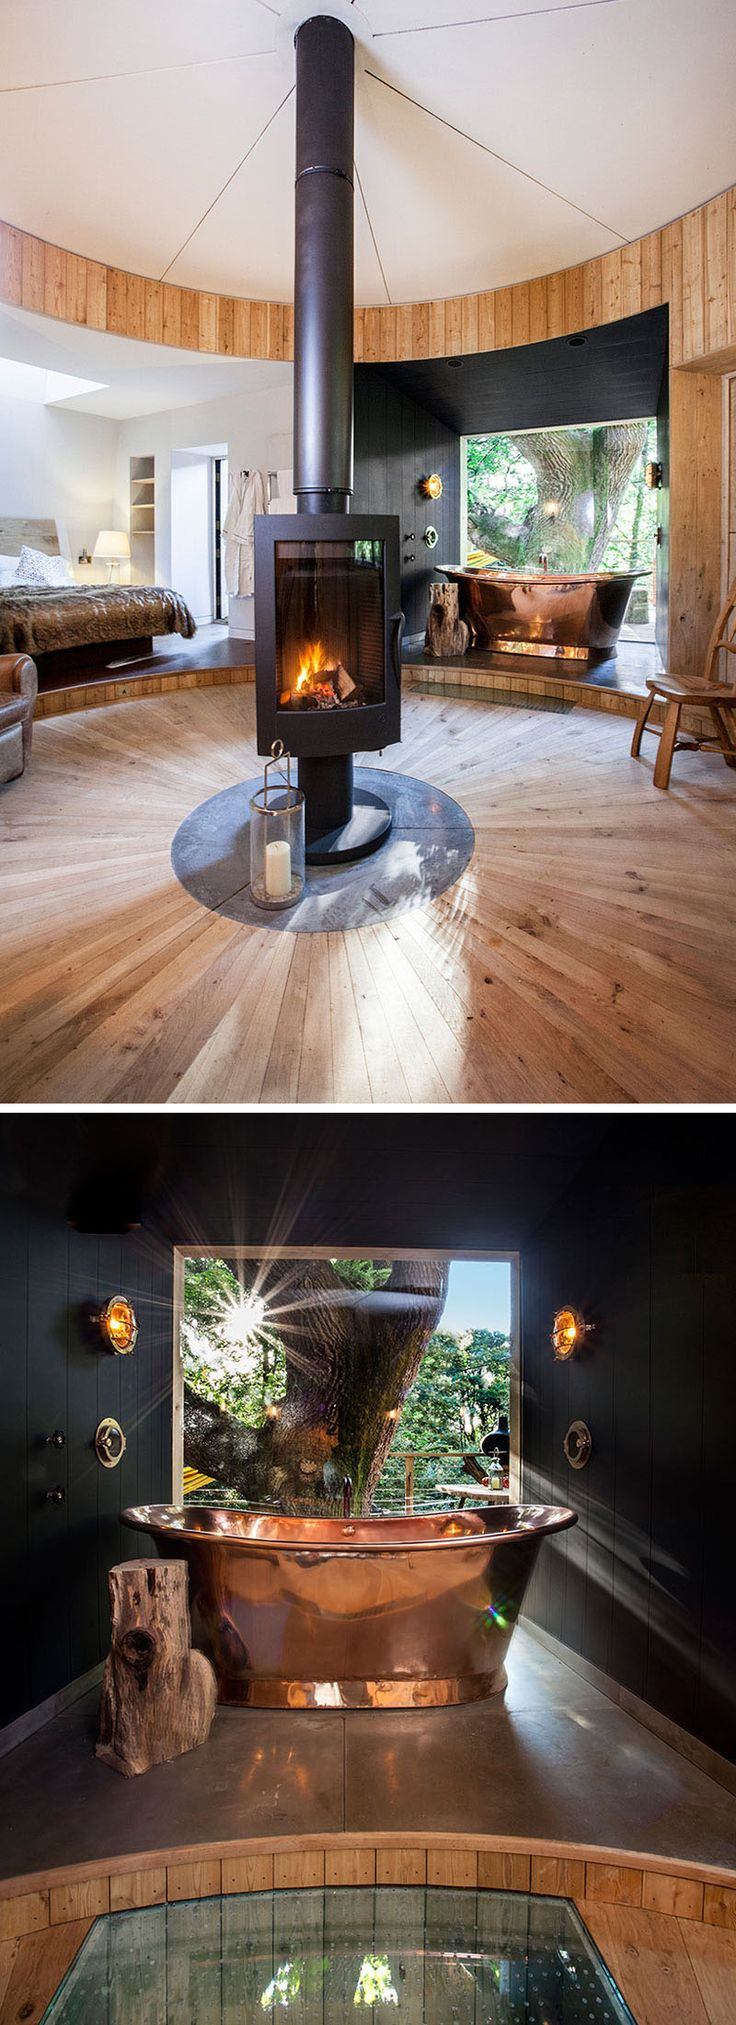 In this modern treehouse, the dark black walls are a strong contrast to the white walls of the bedroom, and a copper bath draws your eye to the space. A large floor-to-ceiling window provides uninterrupted views of the trees.